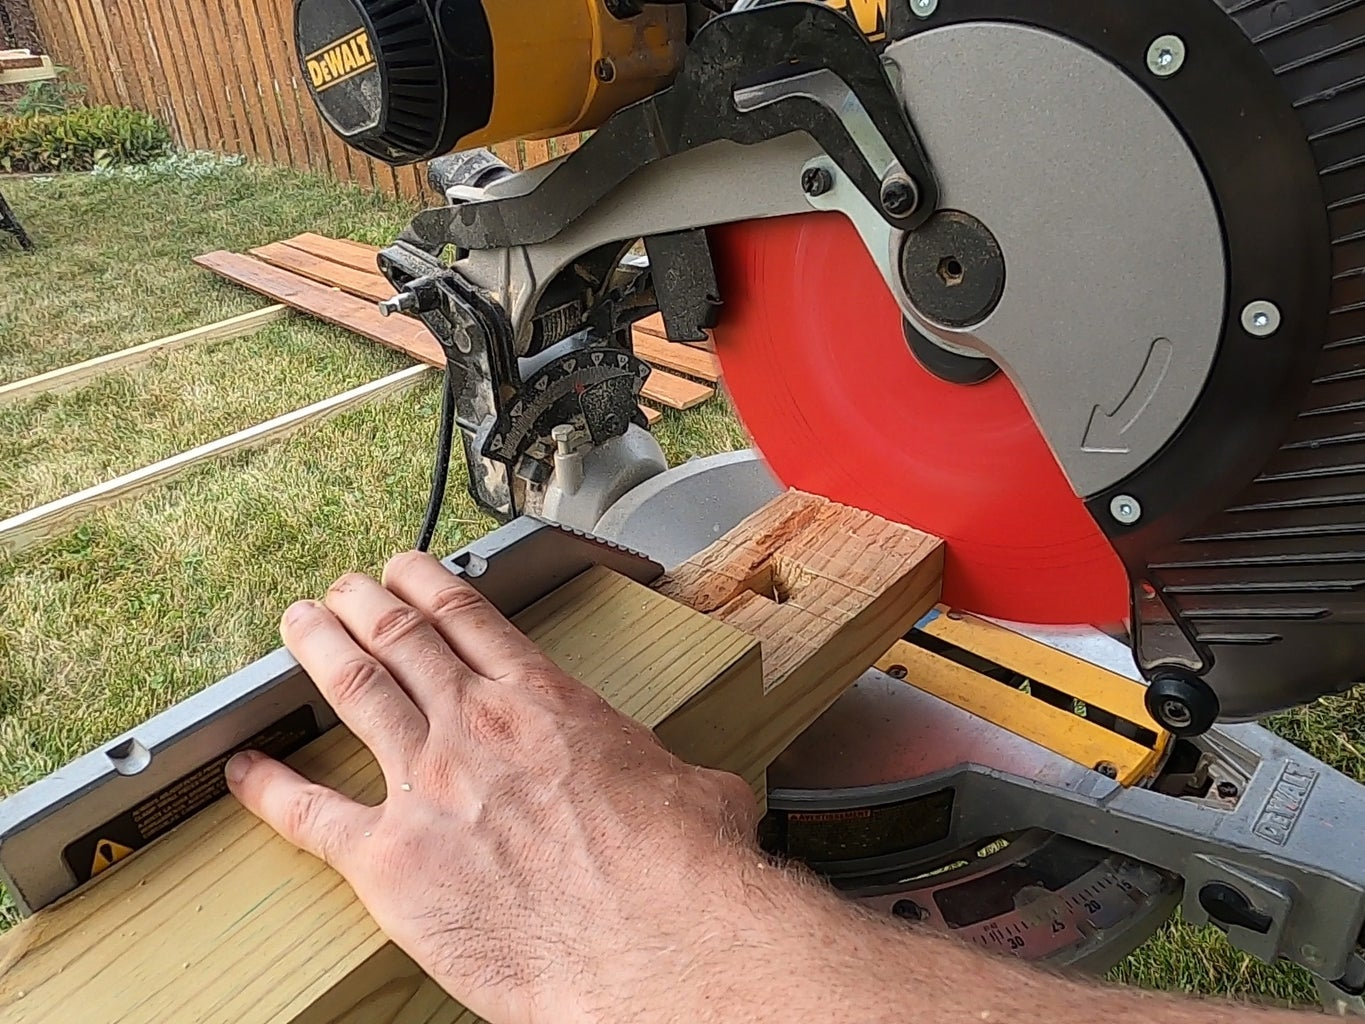 Step 2. Cutting the Lumber to Size